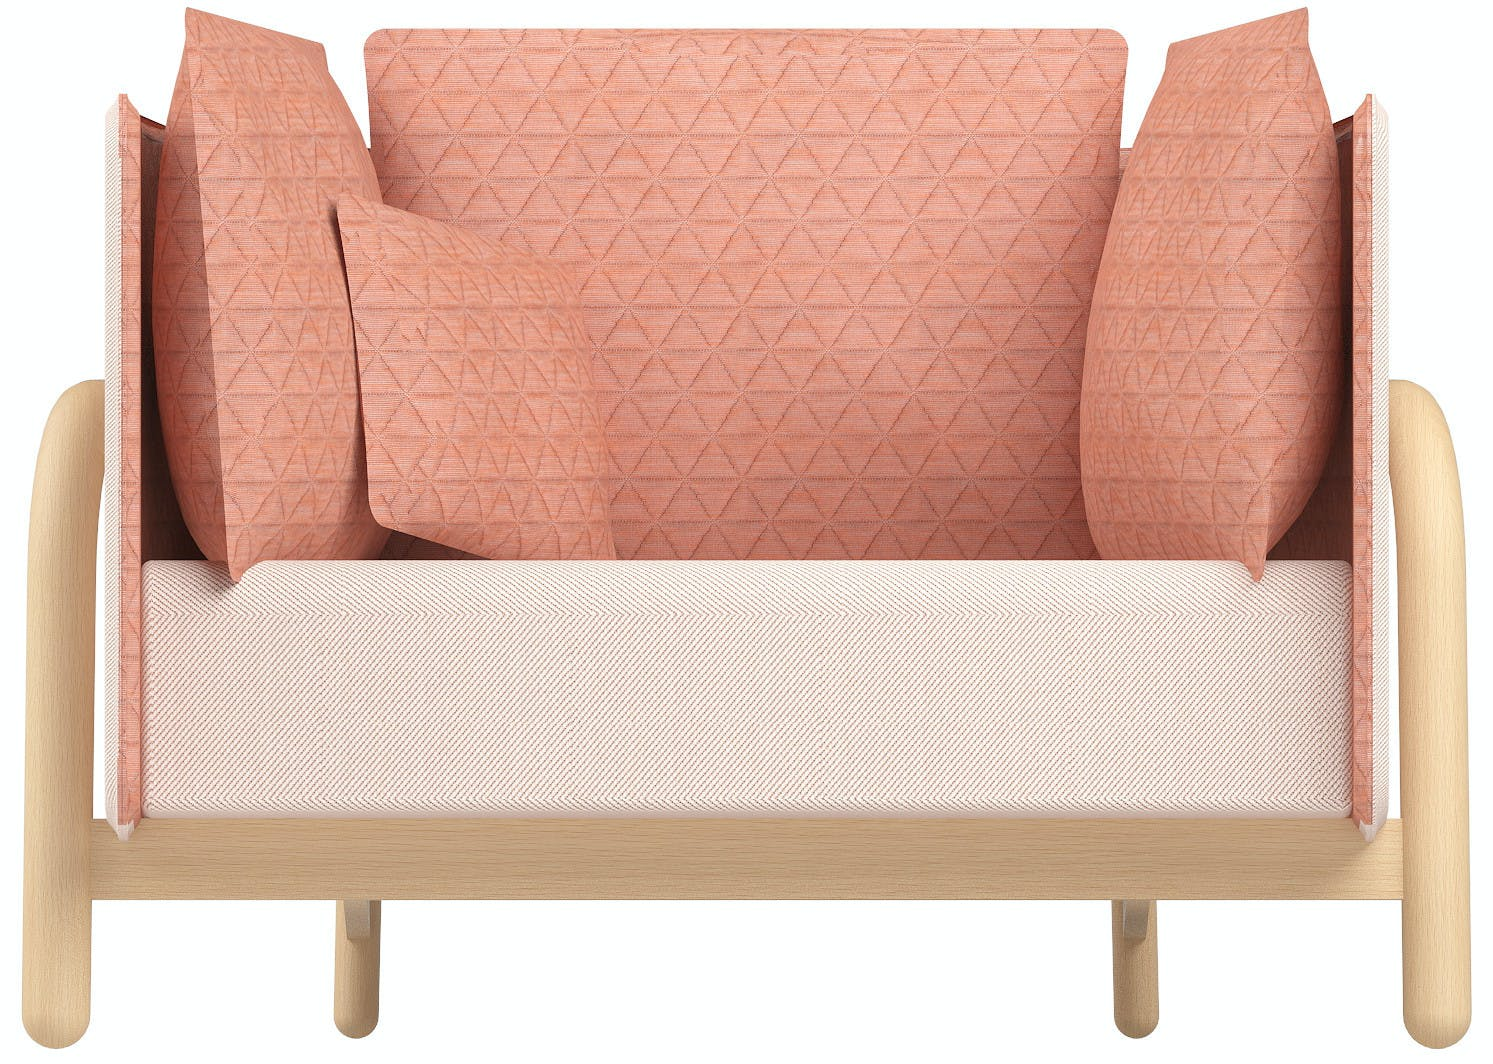 DUM-Beech-Private-Loveseat-Low-2